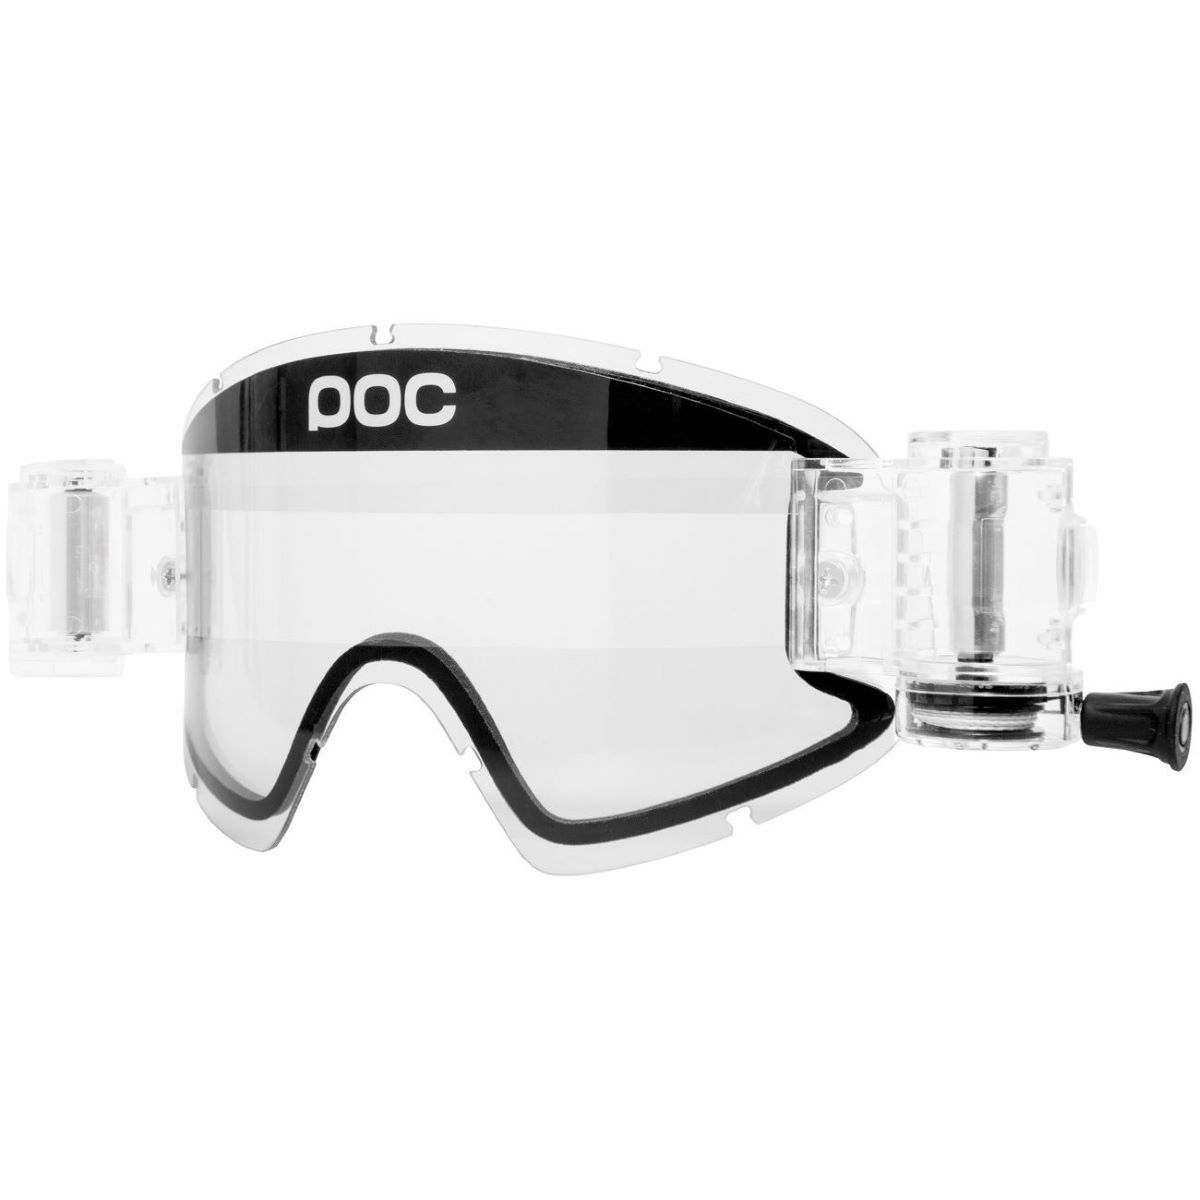 POC POC Ora Roll Off System   Cycling Goggles